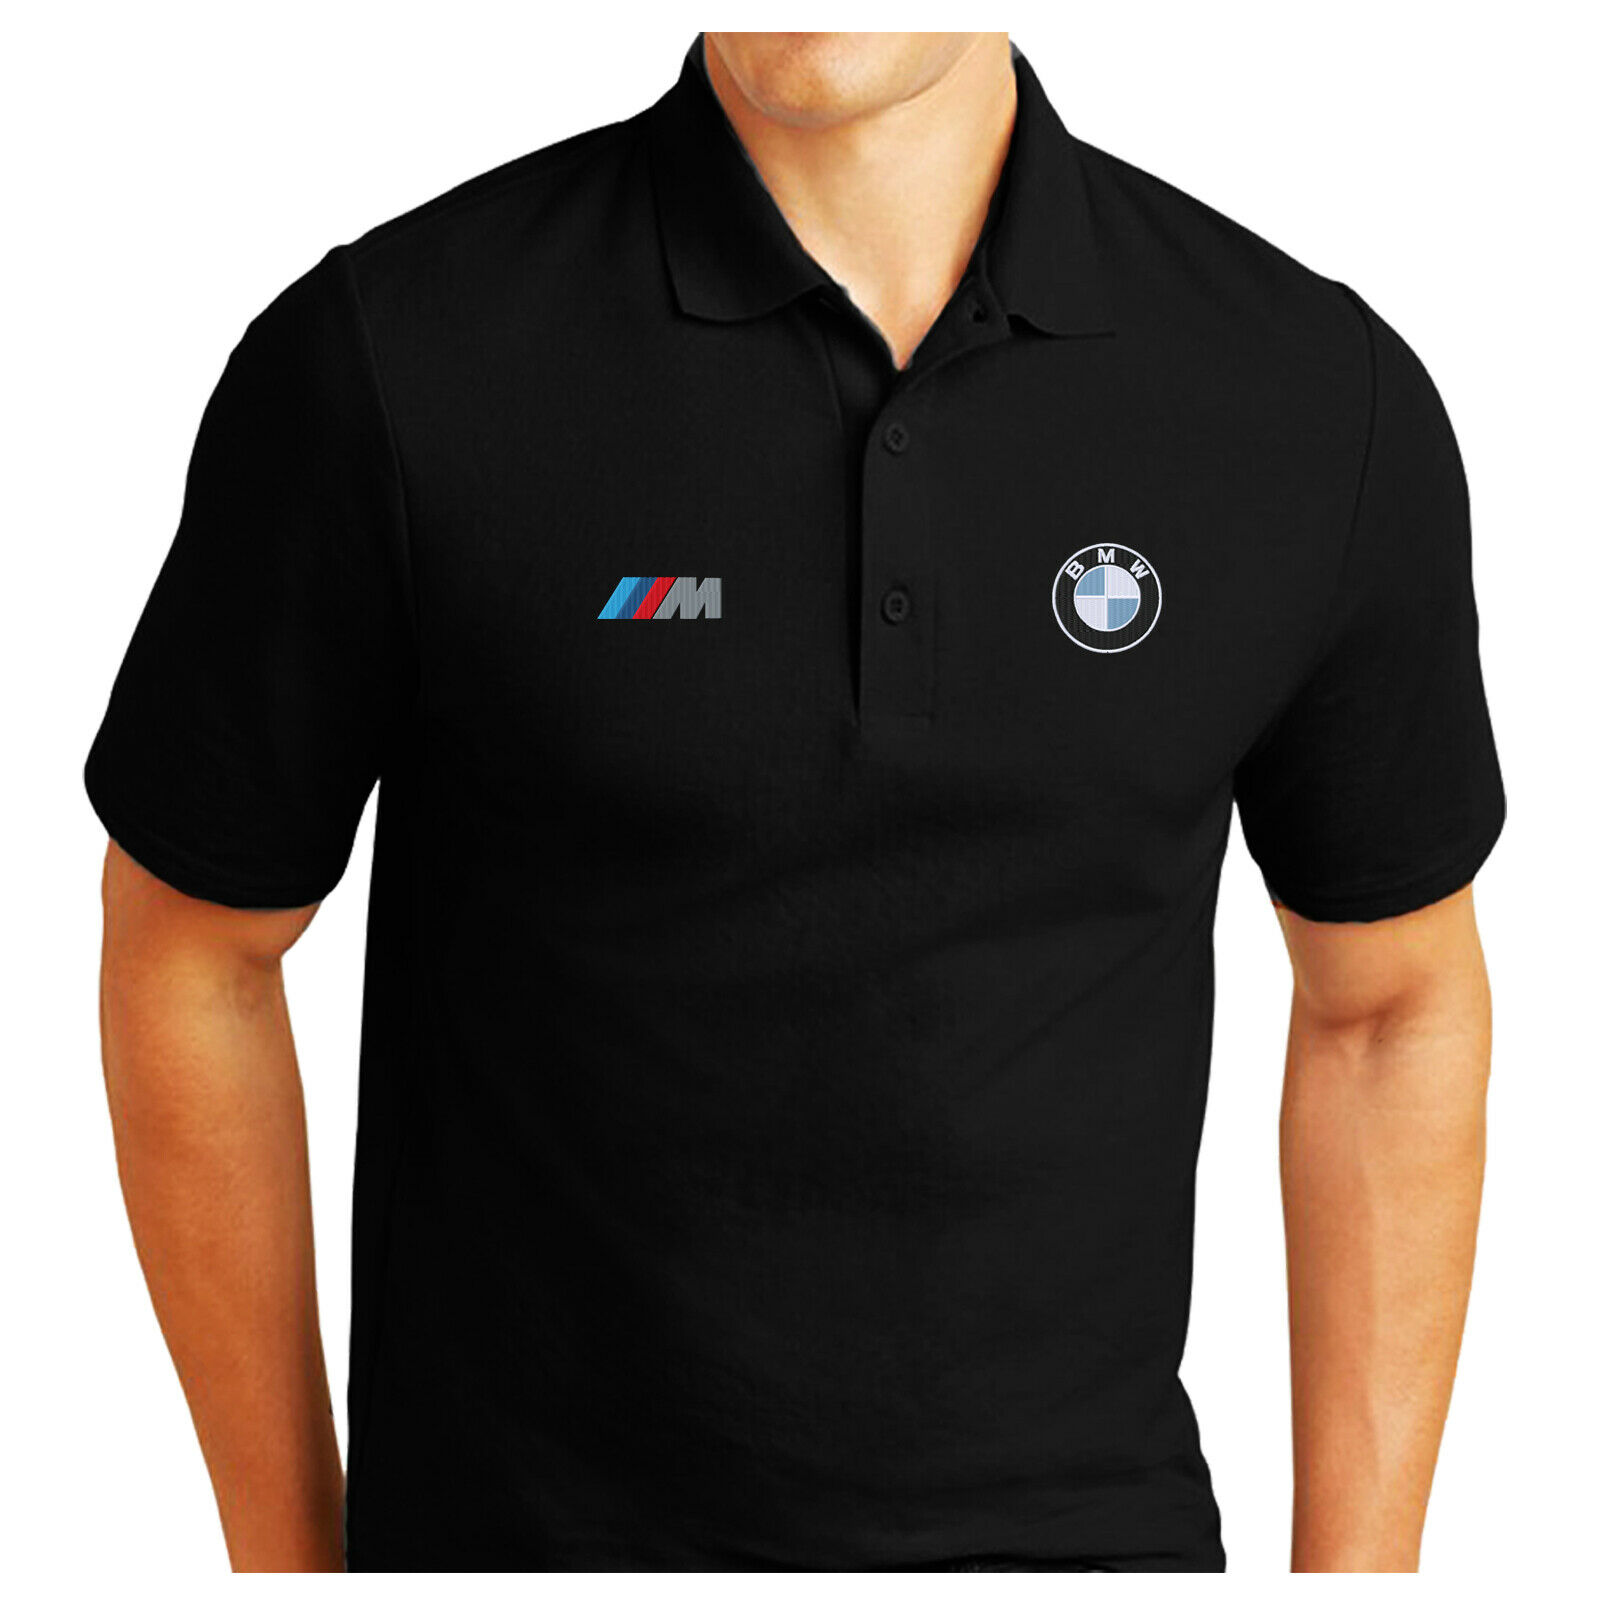 df6dae763b04 Details about BMW   M-POWER LOGO EMBROIDERED PIQUE POLO SHIRT WORKWEAR  SPORT OUTDOOR BIRTHDAY